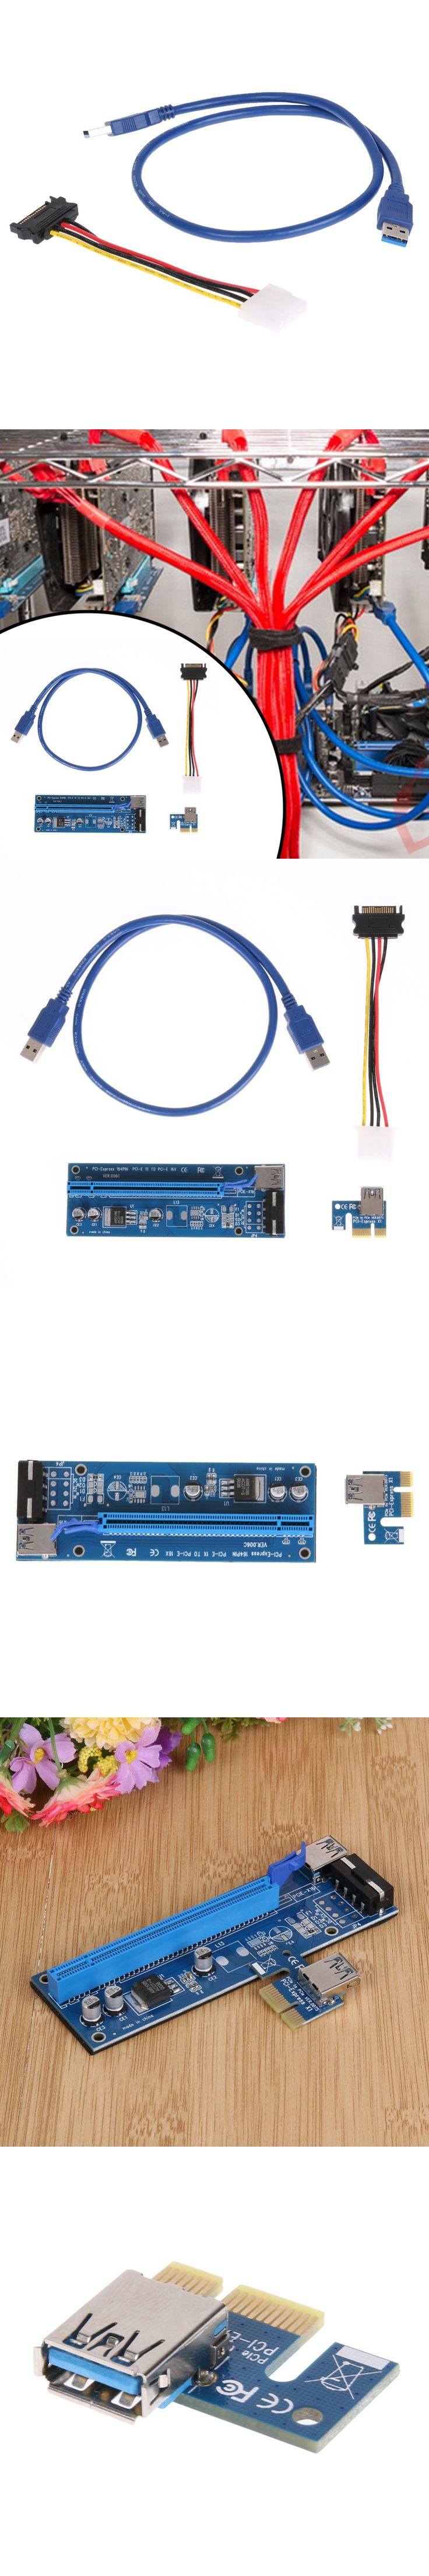 60cm PCI Express PCI-E 1X to 16X Riser Card Extender + USB 3.0 Cable / 15Pin SATA to 4Pin IDE Molex Power Wire for BTC Miner